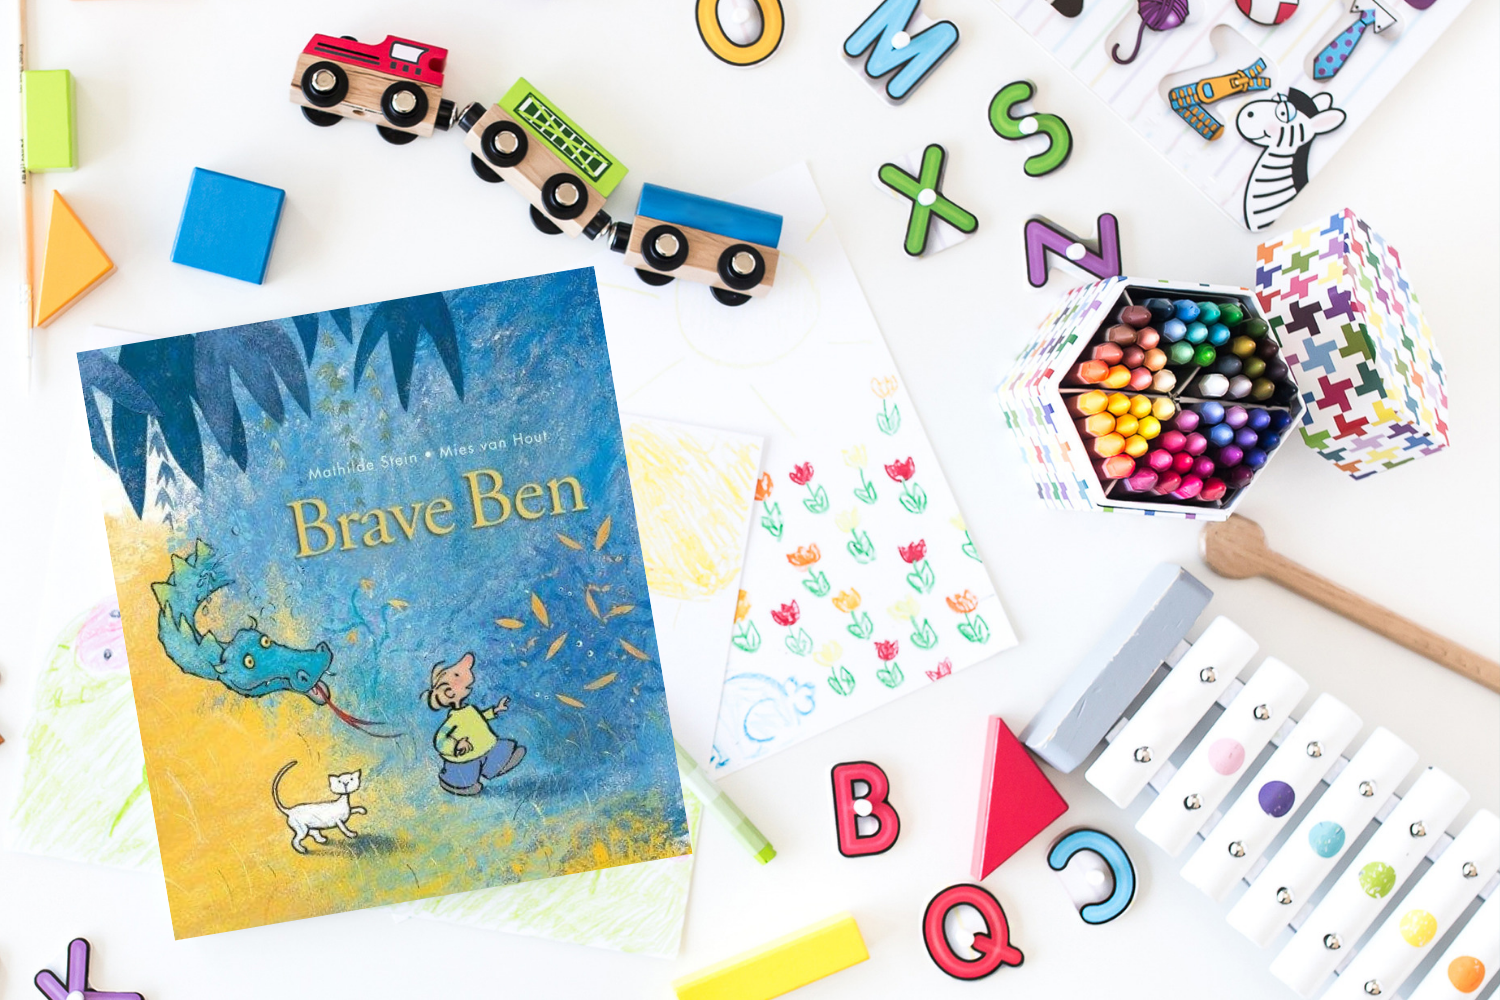 Brave Ben - Books from Past Boxes of Tiny Humans Read Kids Book Subscription Box